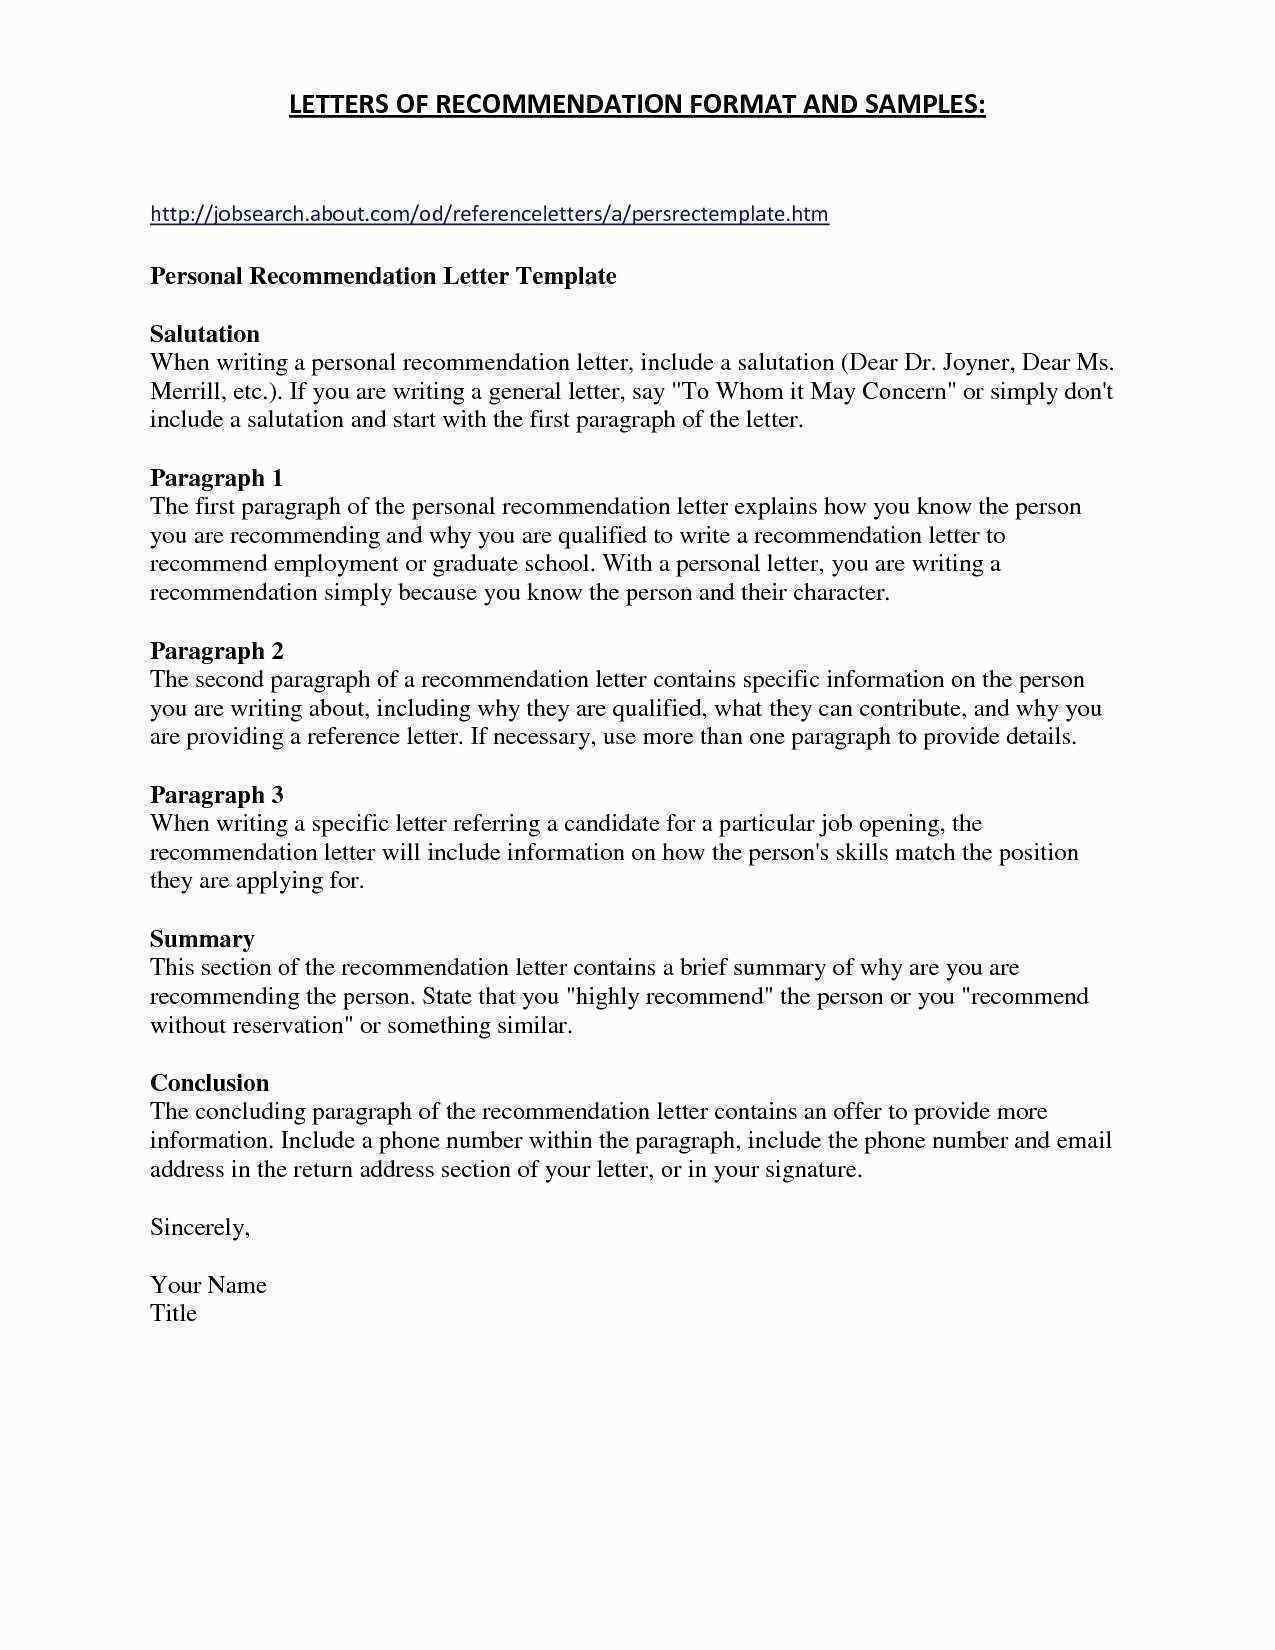 letter of recommendation for employment template Collection-Letter Re mendation format Beautiful High School Re Mendation Letter Template Best Job Re Mendation 12-i